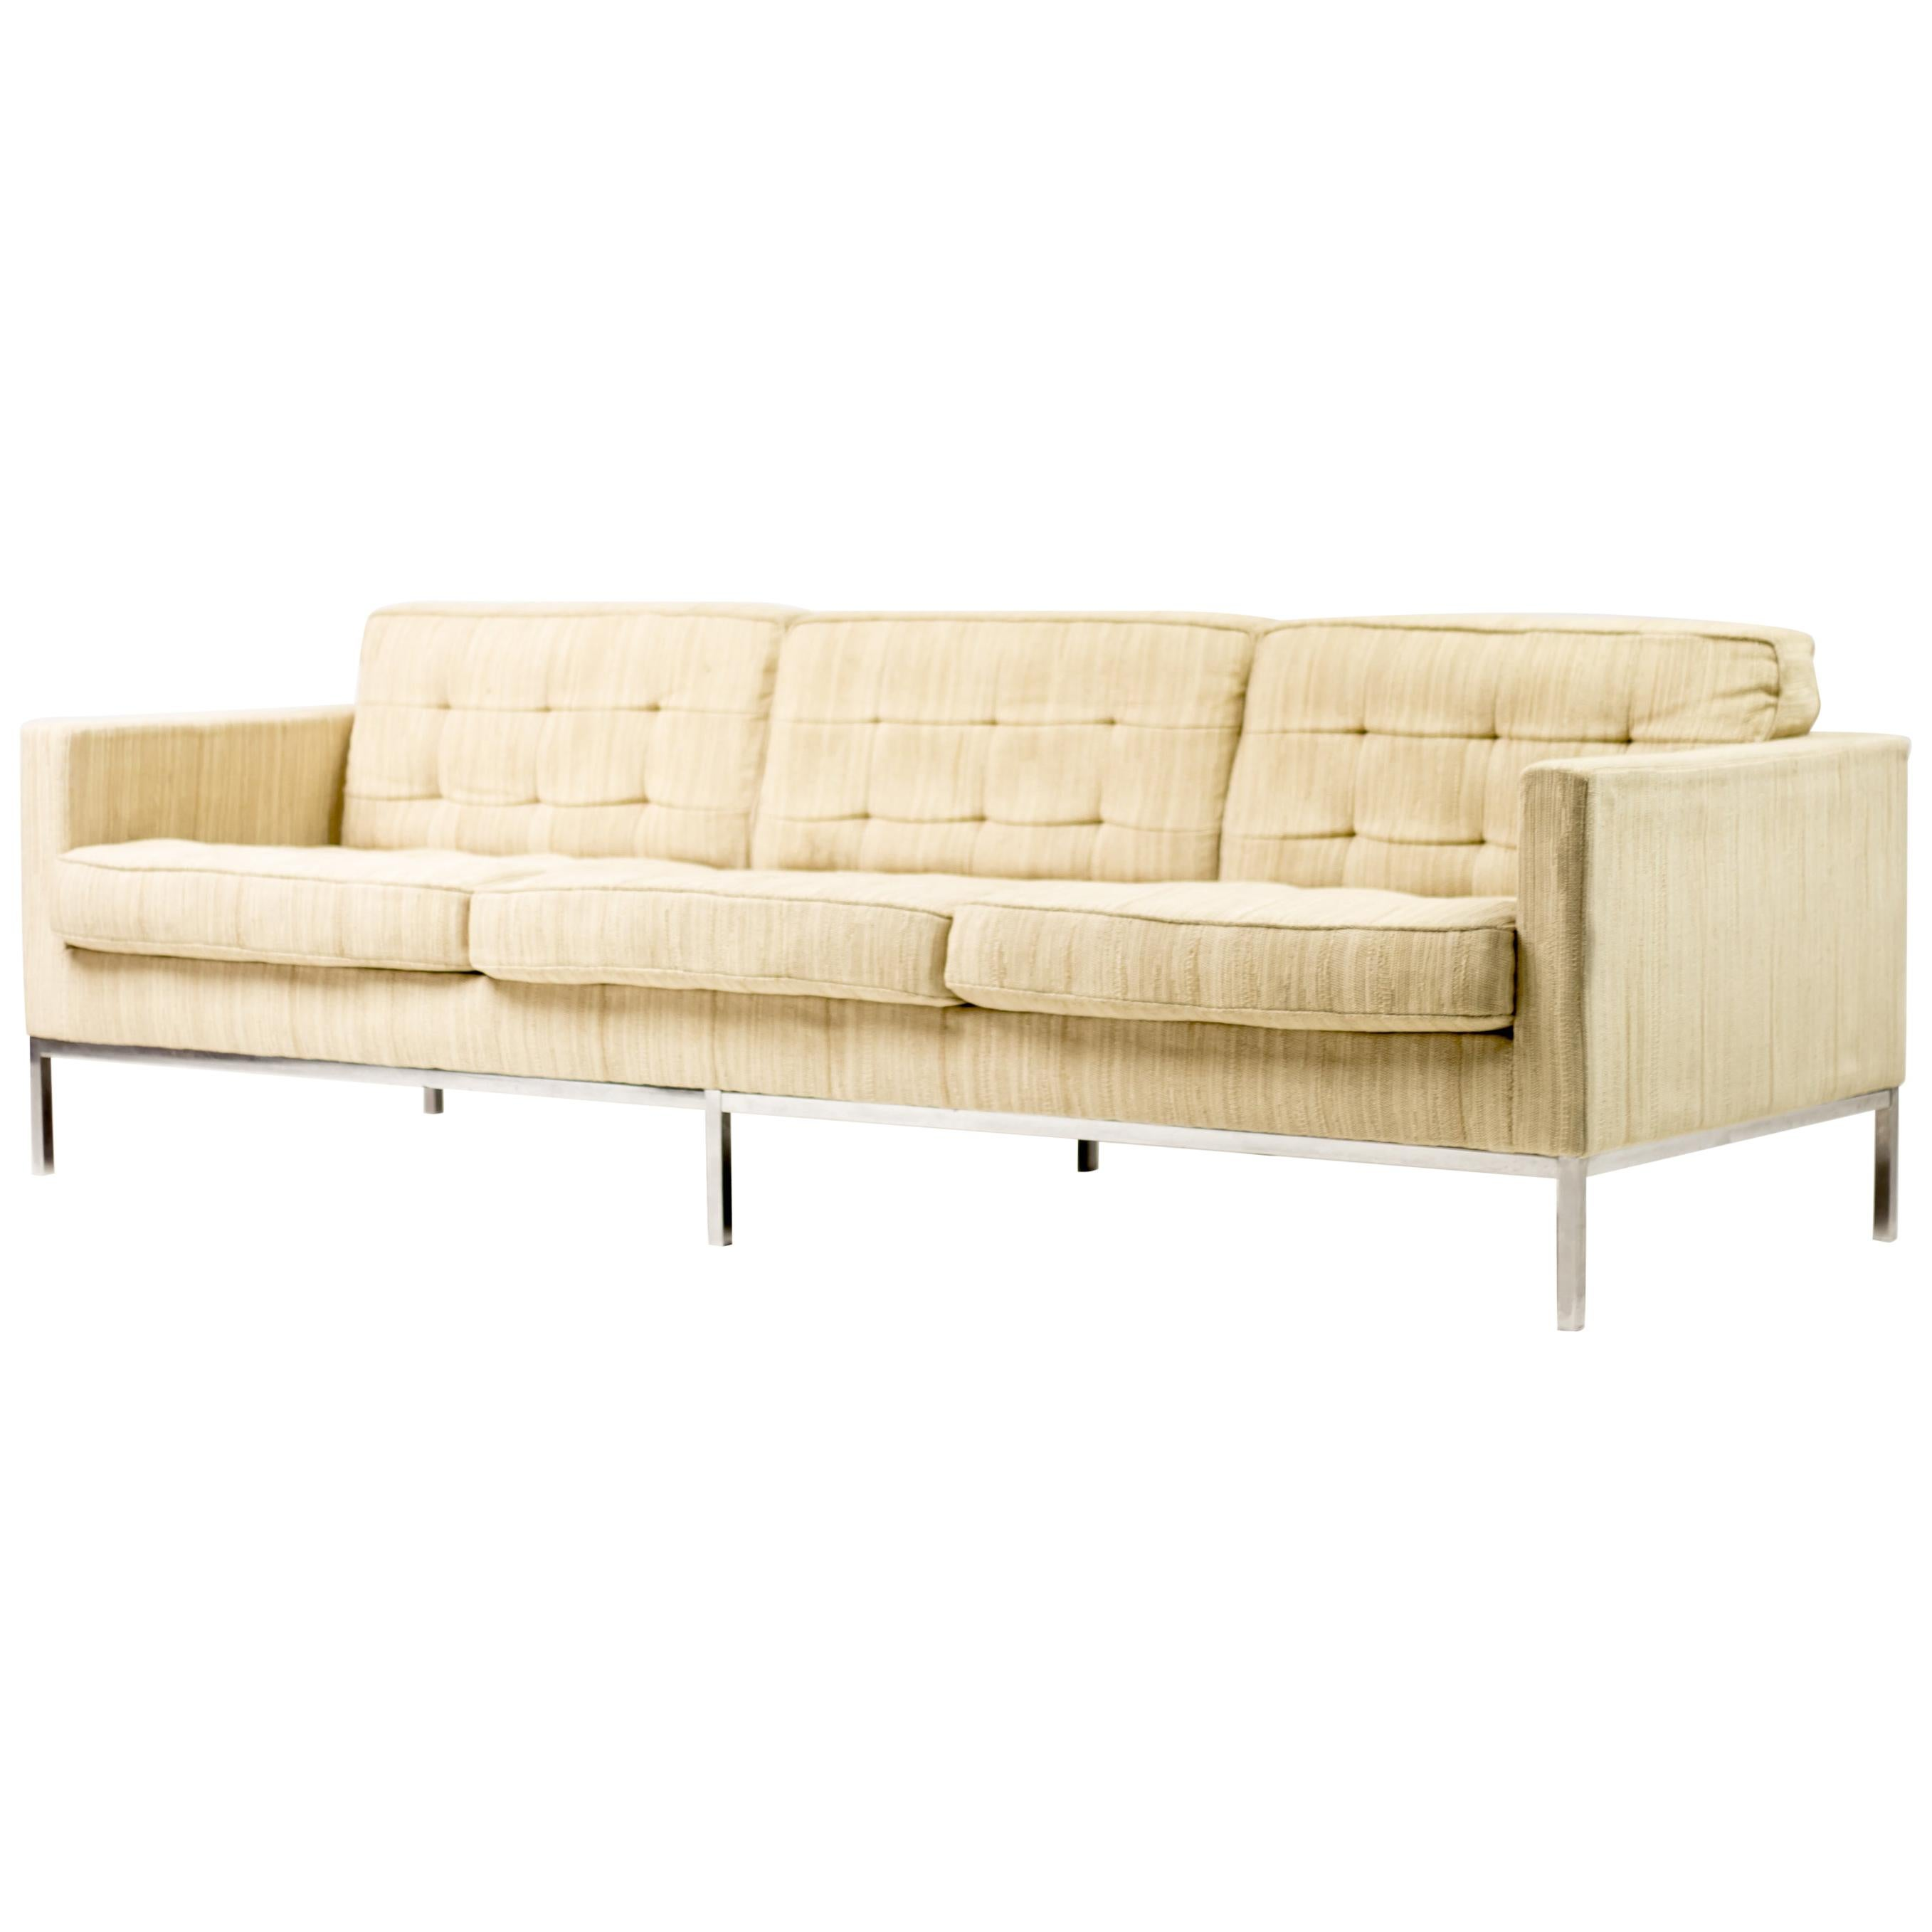 Genial Florence Knoll Sofas   62 For Sale At 1stdibs